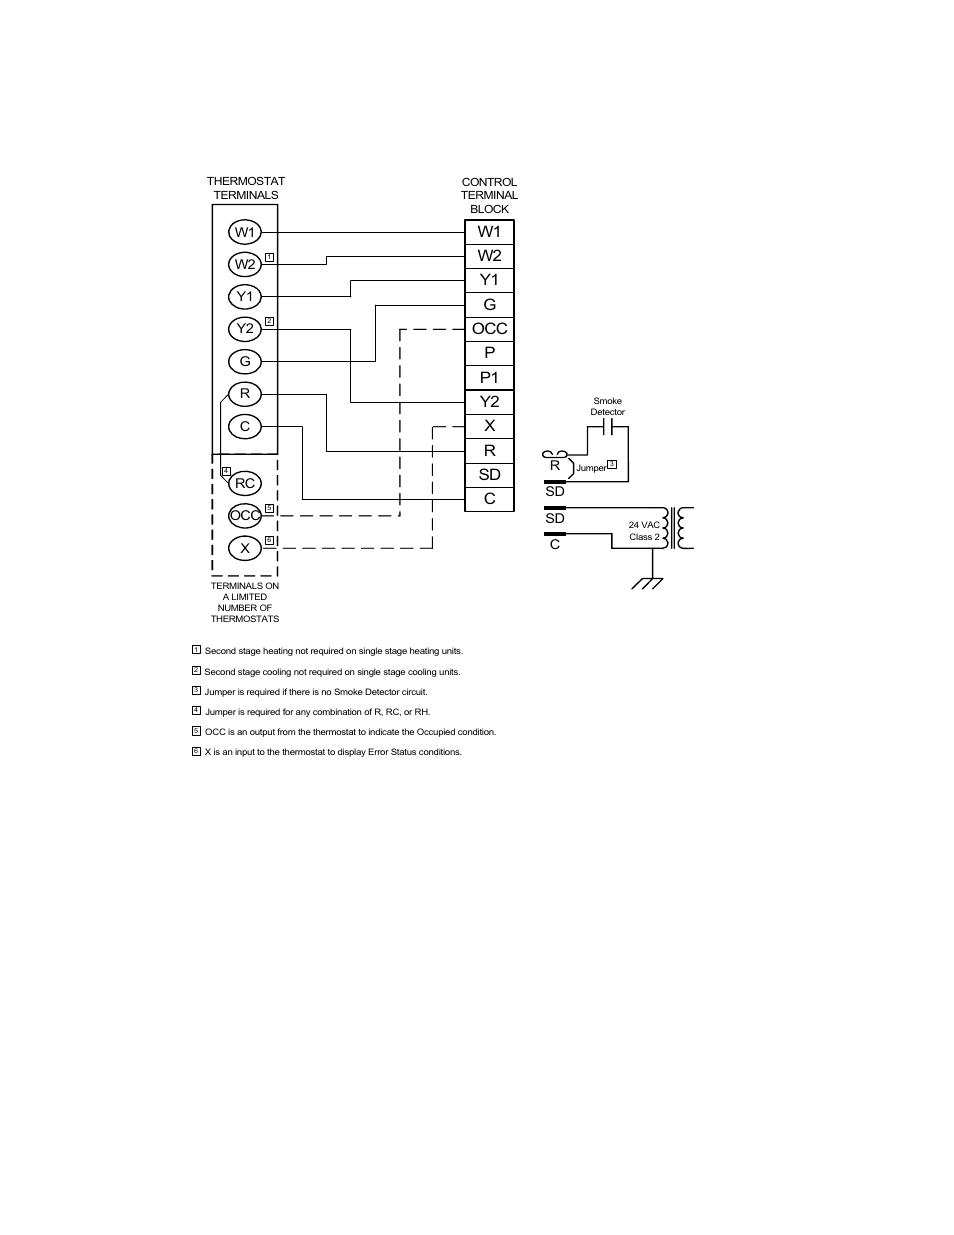 Unitary Products Wiring Diagram Schematic Diagrams White Rodgers Thermostat 1f86 344 Typical Simplicity Figure 13 York Dj 300 Parliamentary Democracy